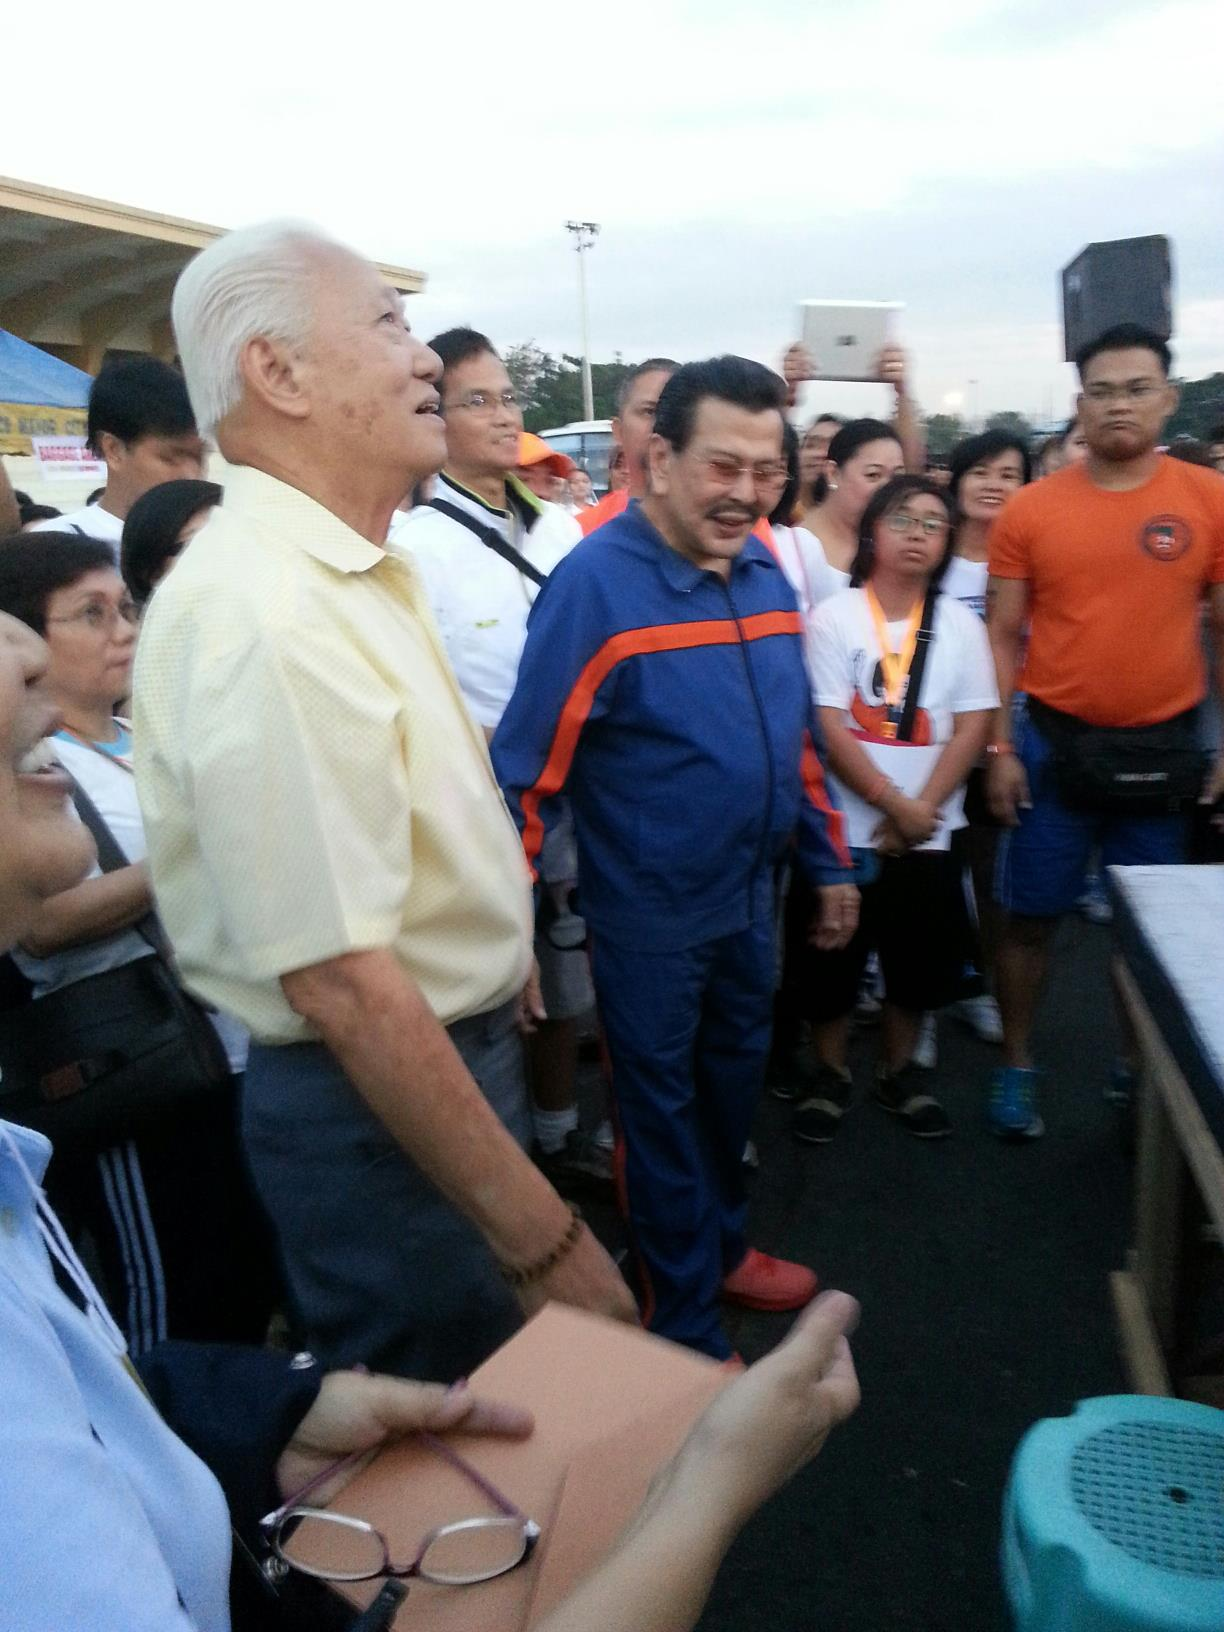 Manila mayoral bets Alfredo Lim (L) and Joseph Estrada (R) share a light moment during a fun run organized by the La Consolacion College in Manila, January 20, 2013. Photo courtesy of the Alfredo Lim campaign.